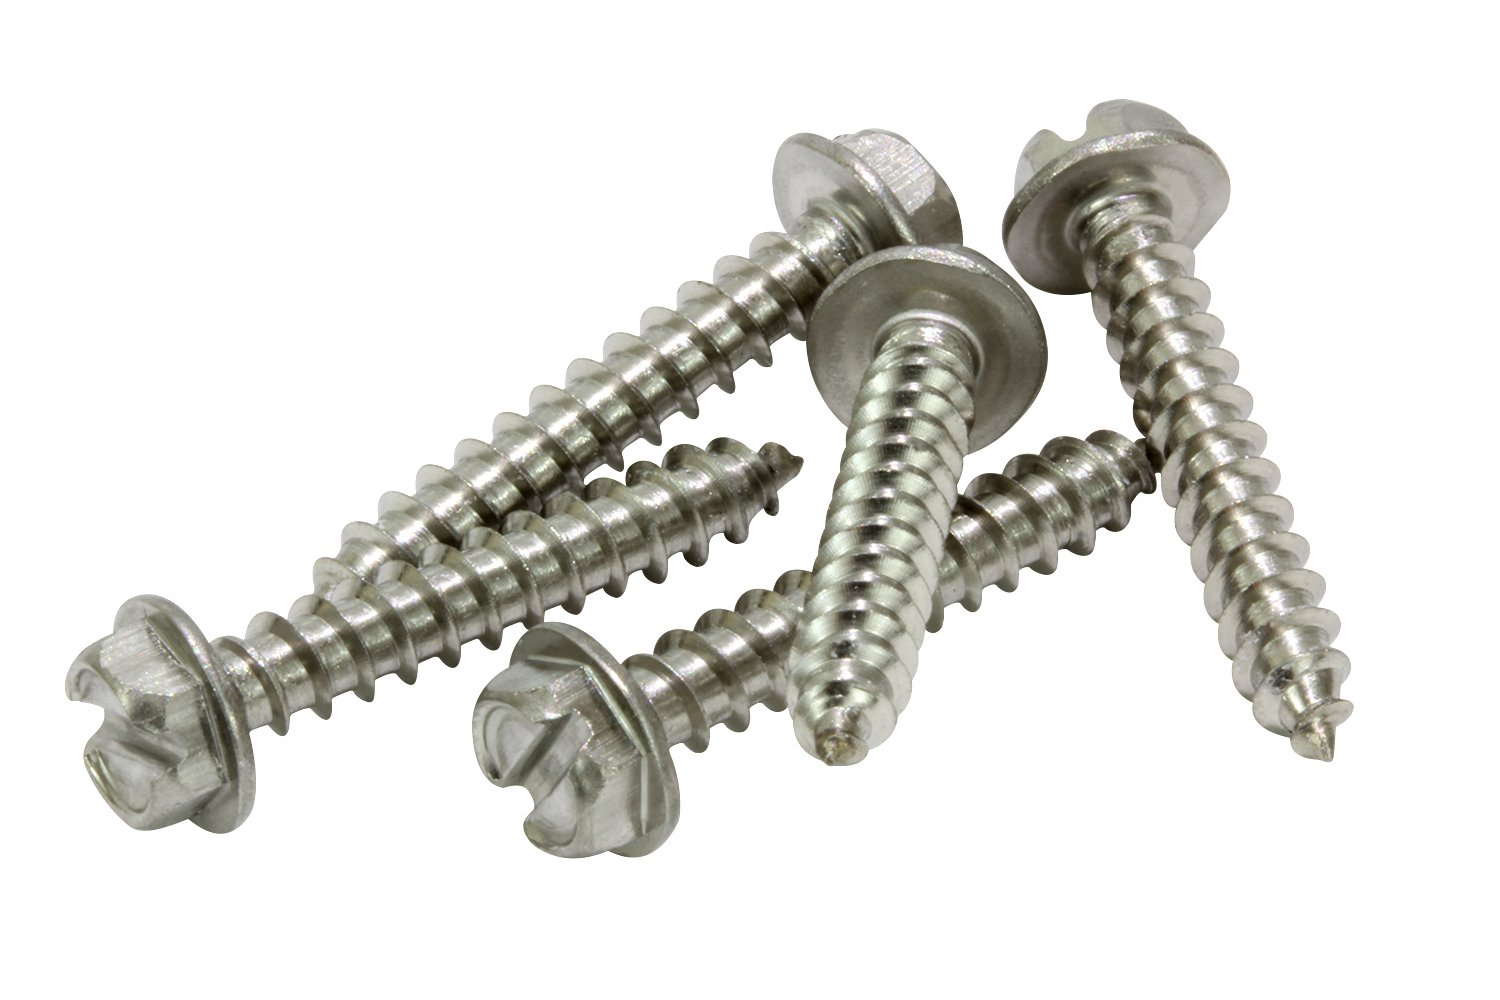 304 Stainless Steel Screw by Bolt Dropper #12 X 1-1//4 Stainless Slotted Hex Washer Head Screw, 25 pc 18-8